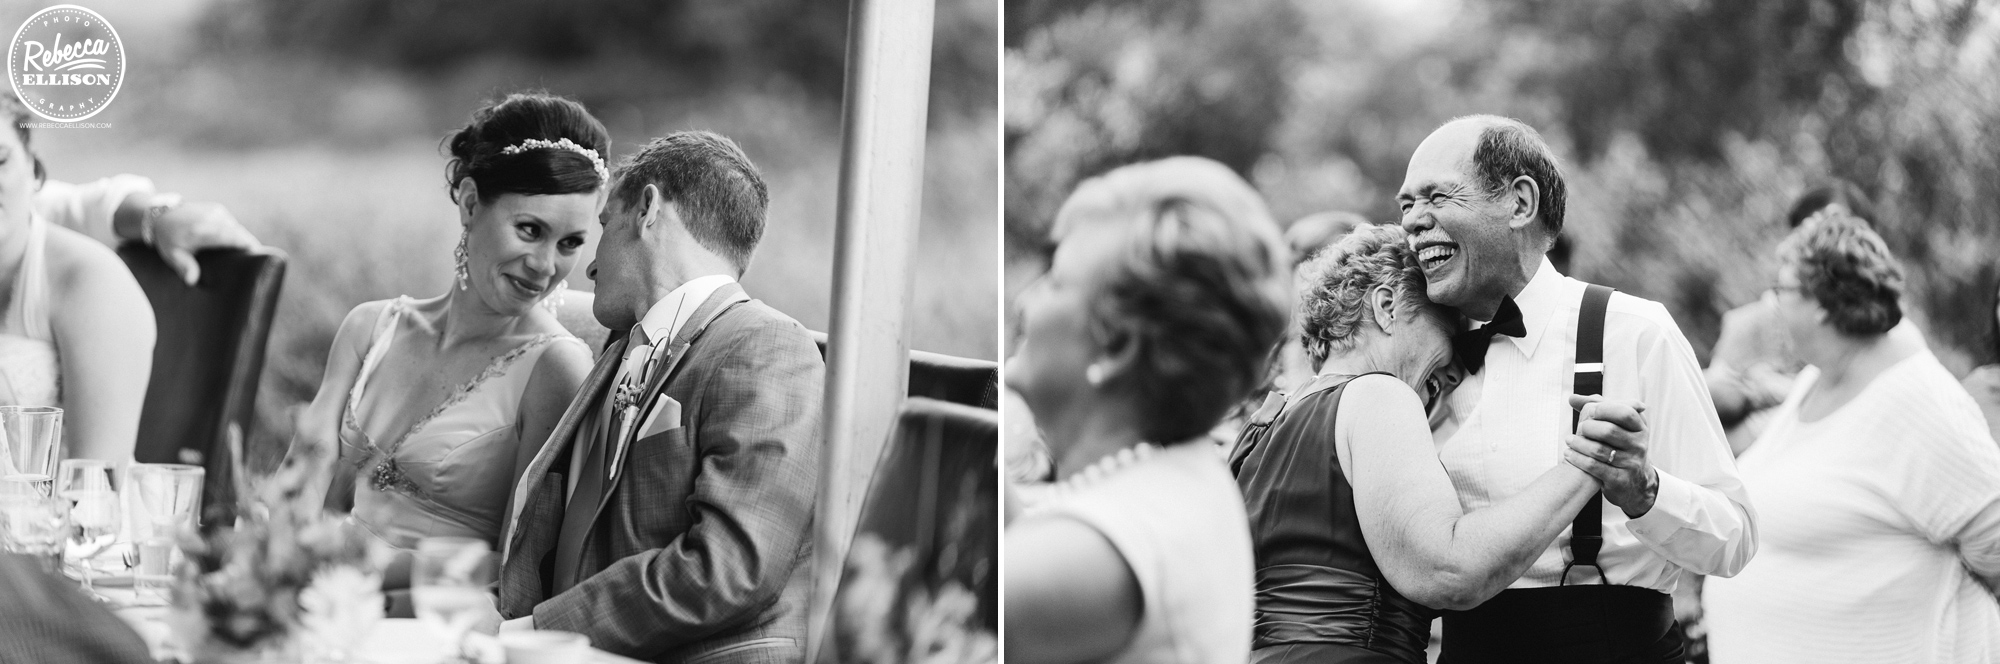 seattle-wedding-photographer-best-of-2014-009